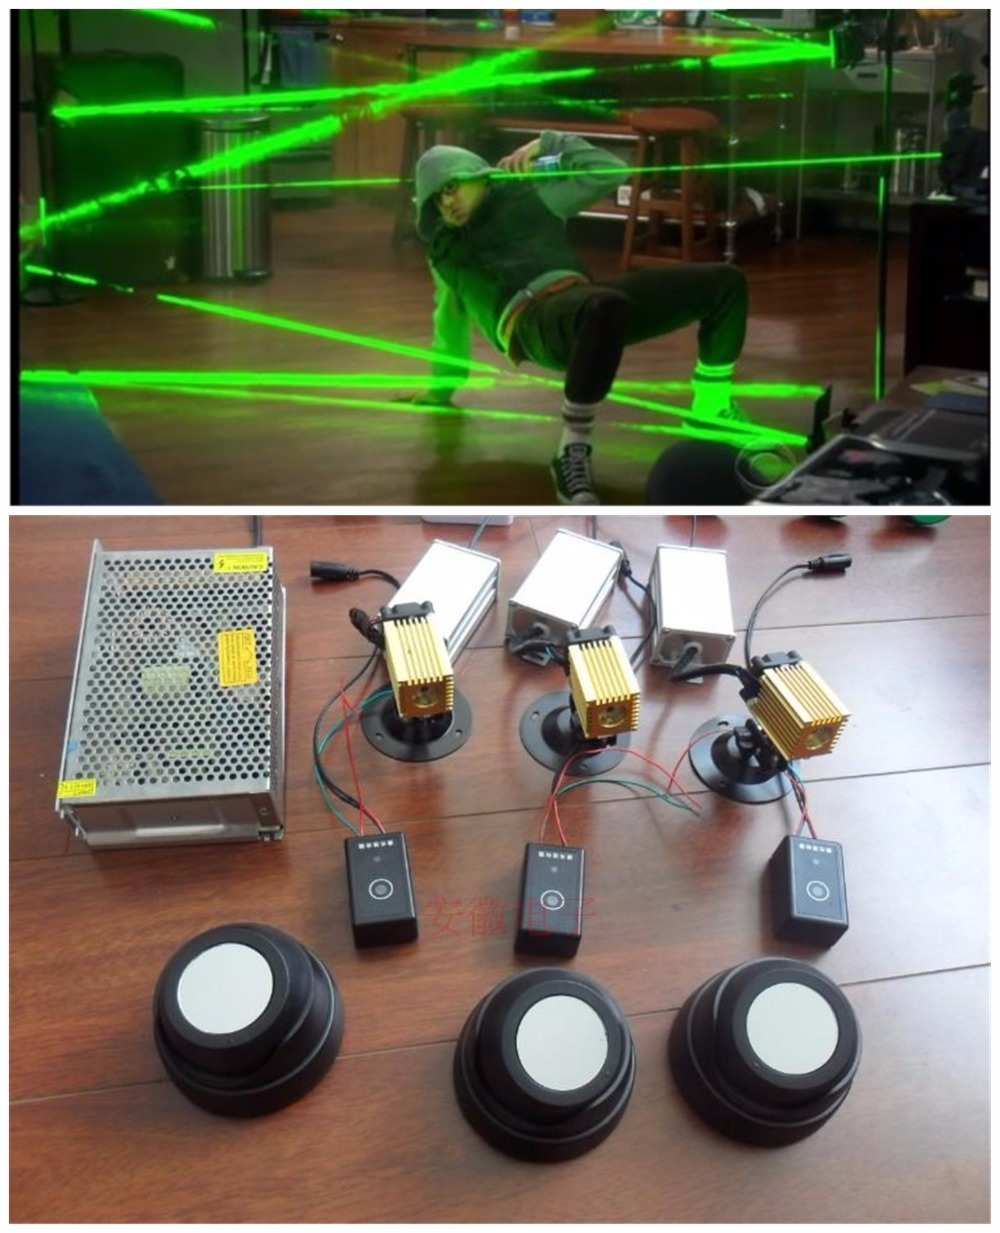 hotsale design magic penetralium escape props Real life room green laser array chamber of escape secret